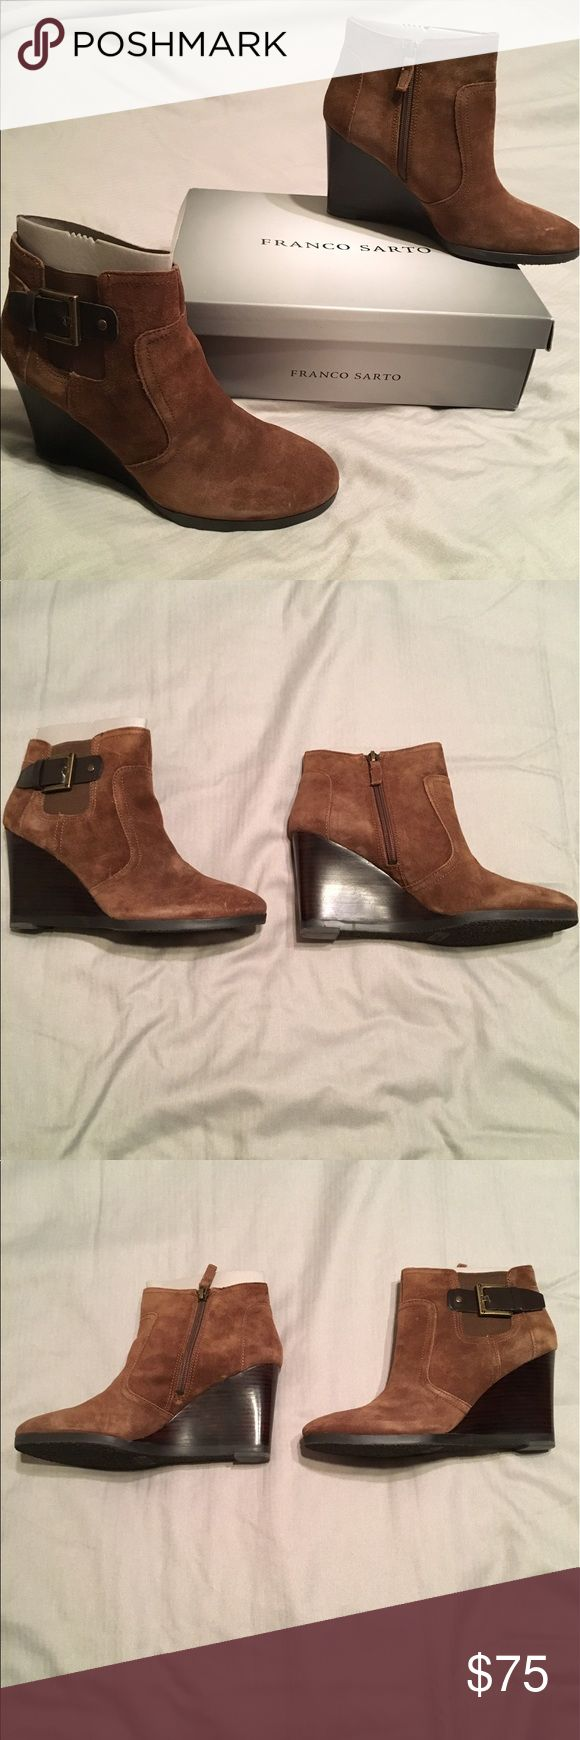 New Franco Sarto brown wedge boots New Franco Sarto brown suede wedge boots. Size 9 1/2. Still in box. A few light scratches (shown in pictures). Franco Sarto Shoes Ankle Boots & Booties